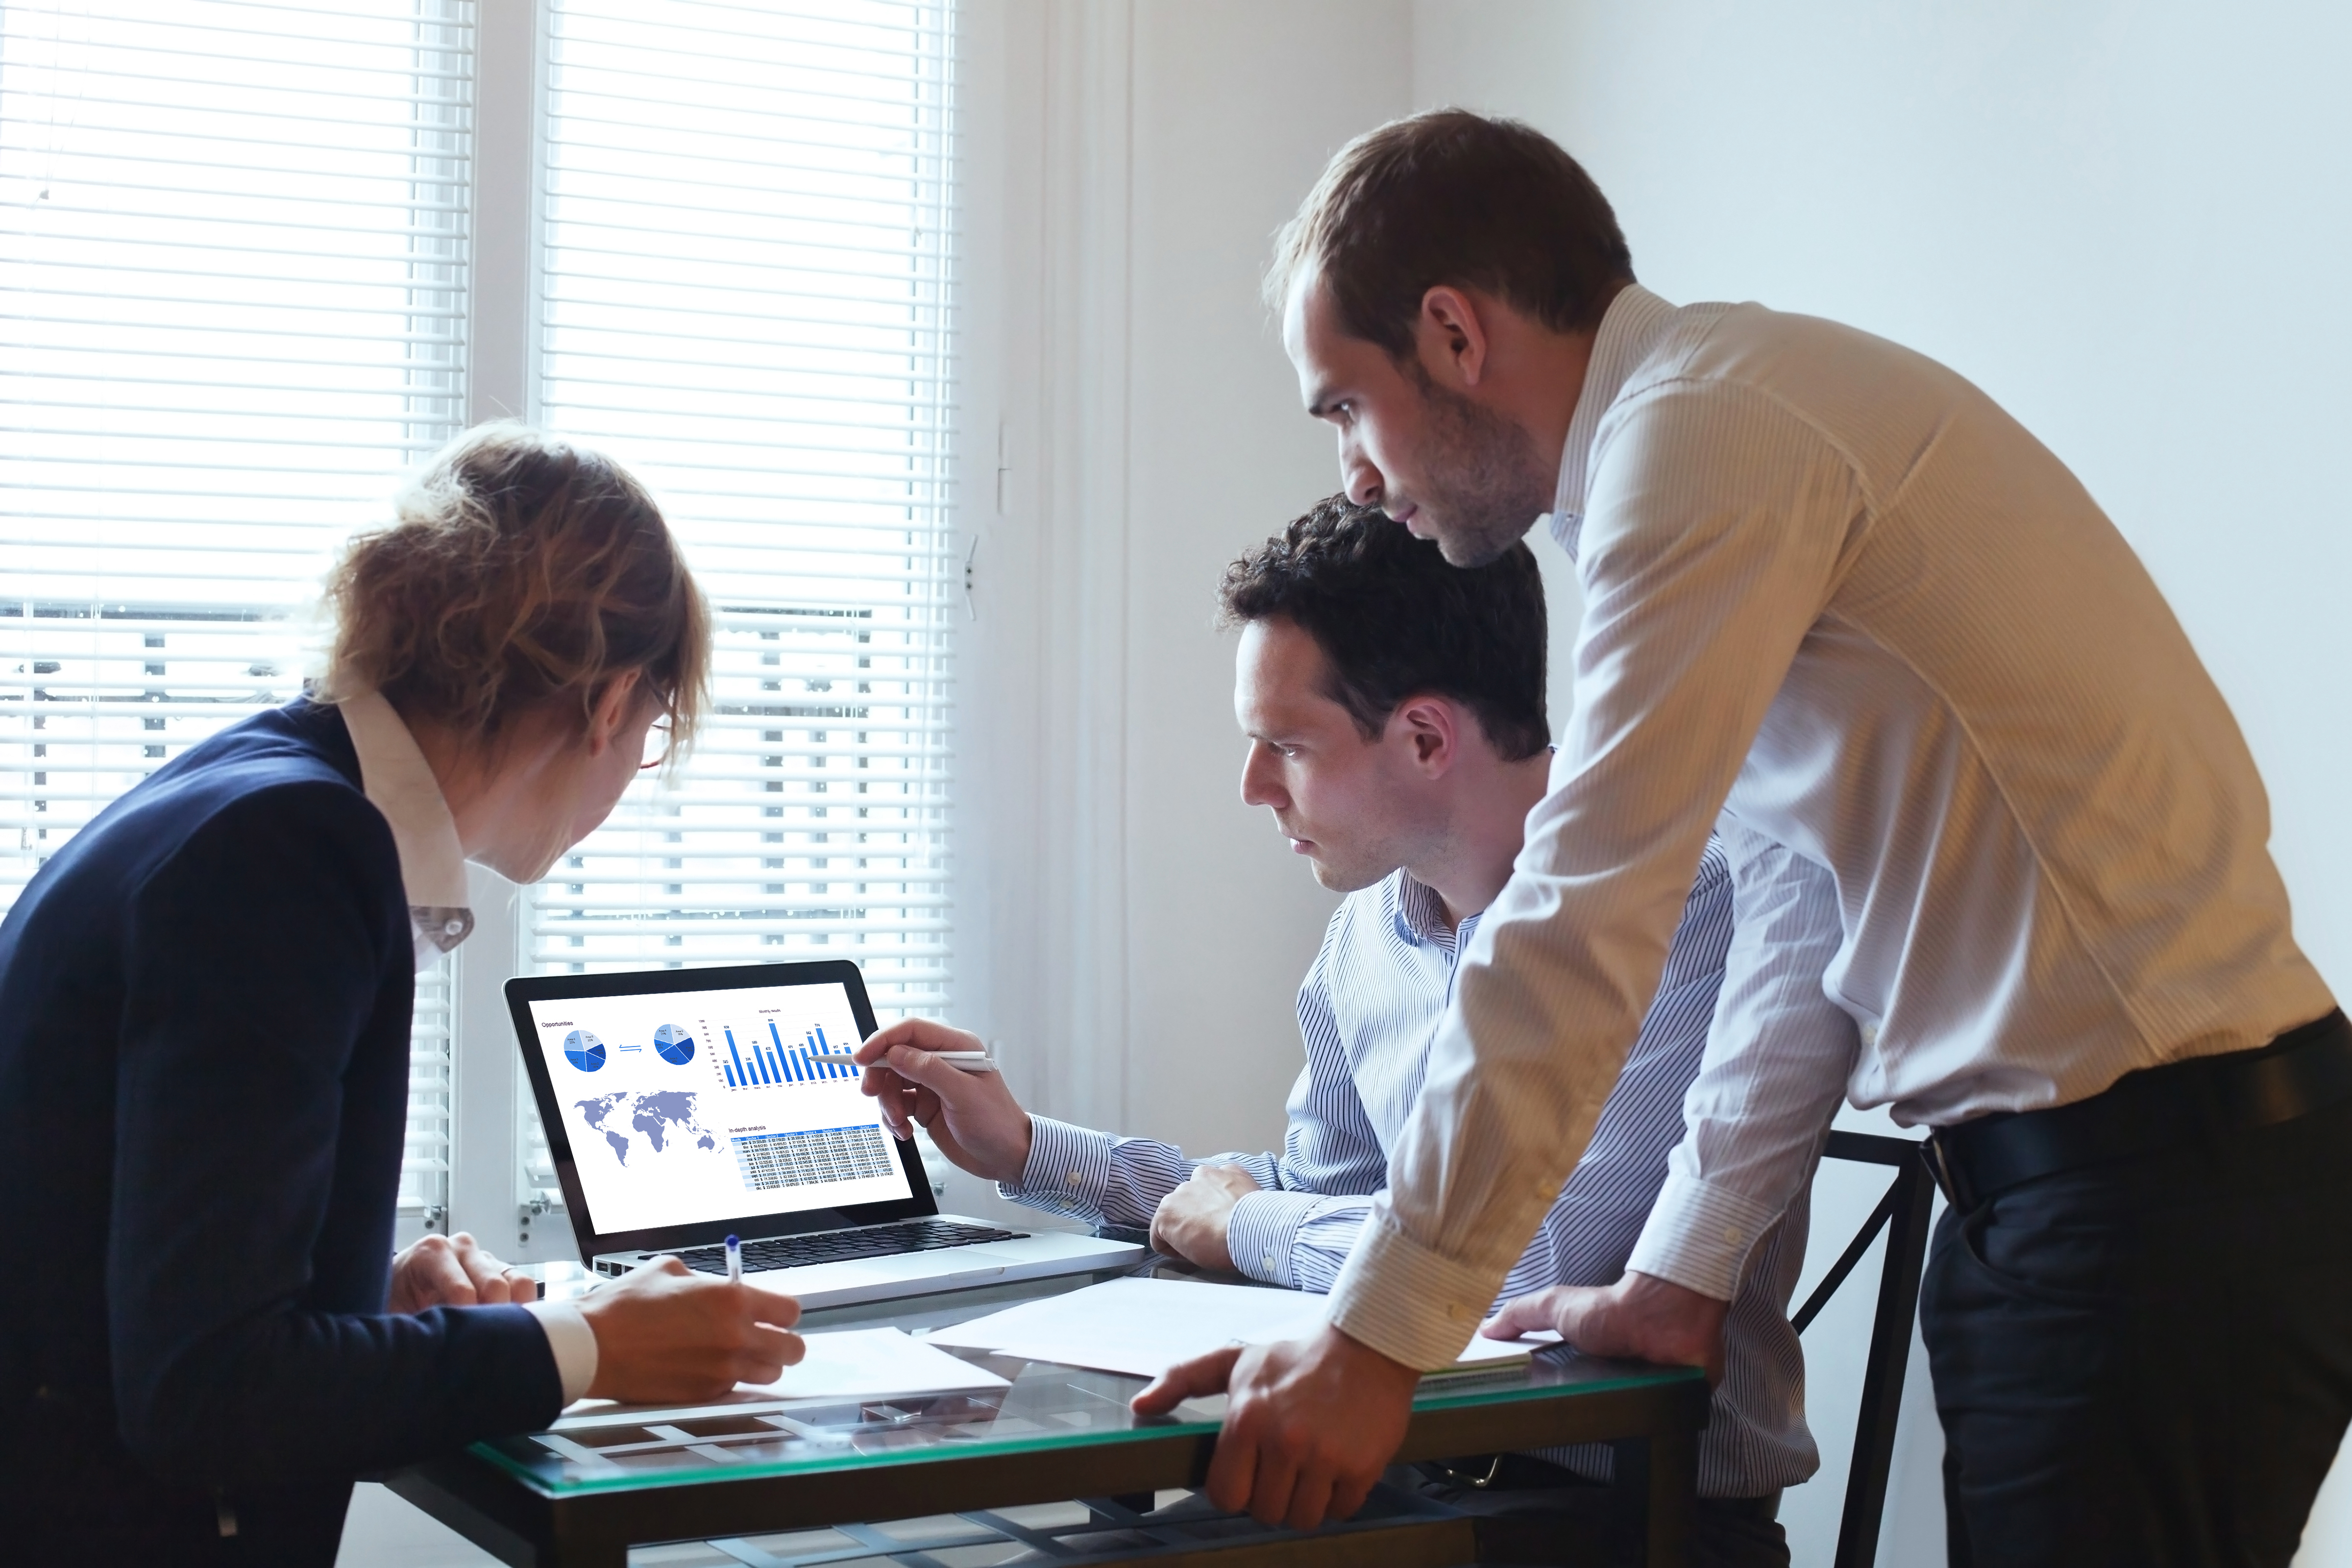 Business partners reviewing data